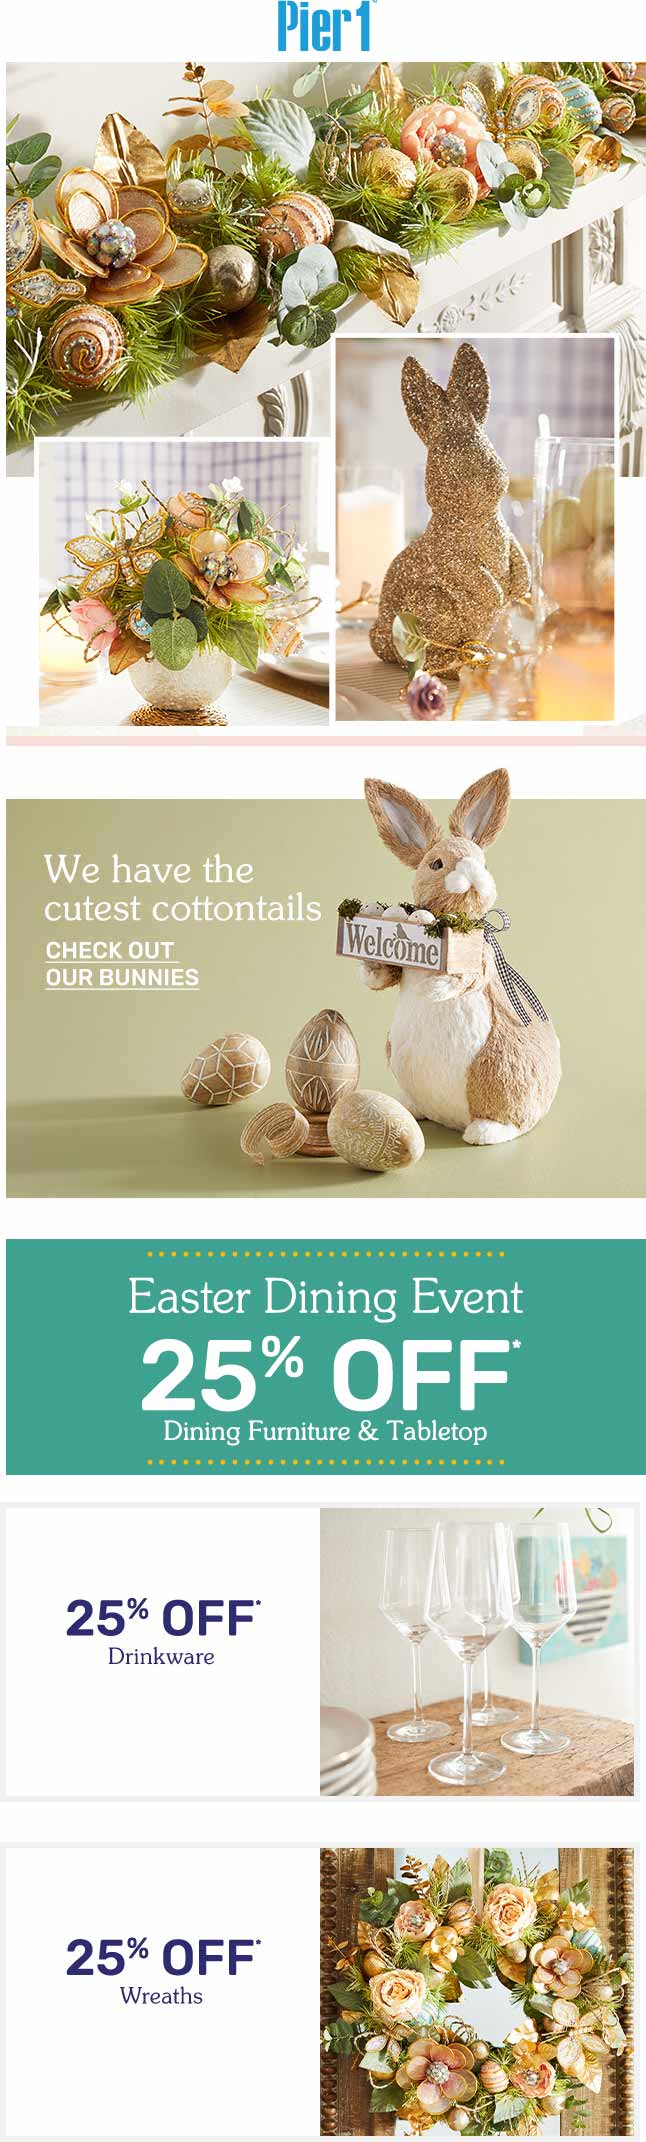 Pier 1 Coupon July 2020 25% off Easter at Pier 1, ditto online